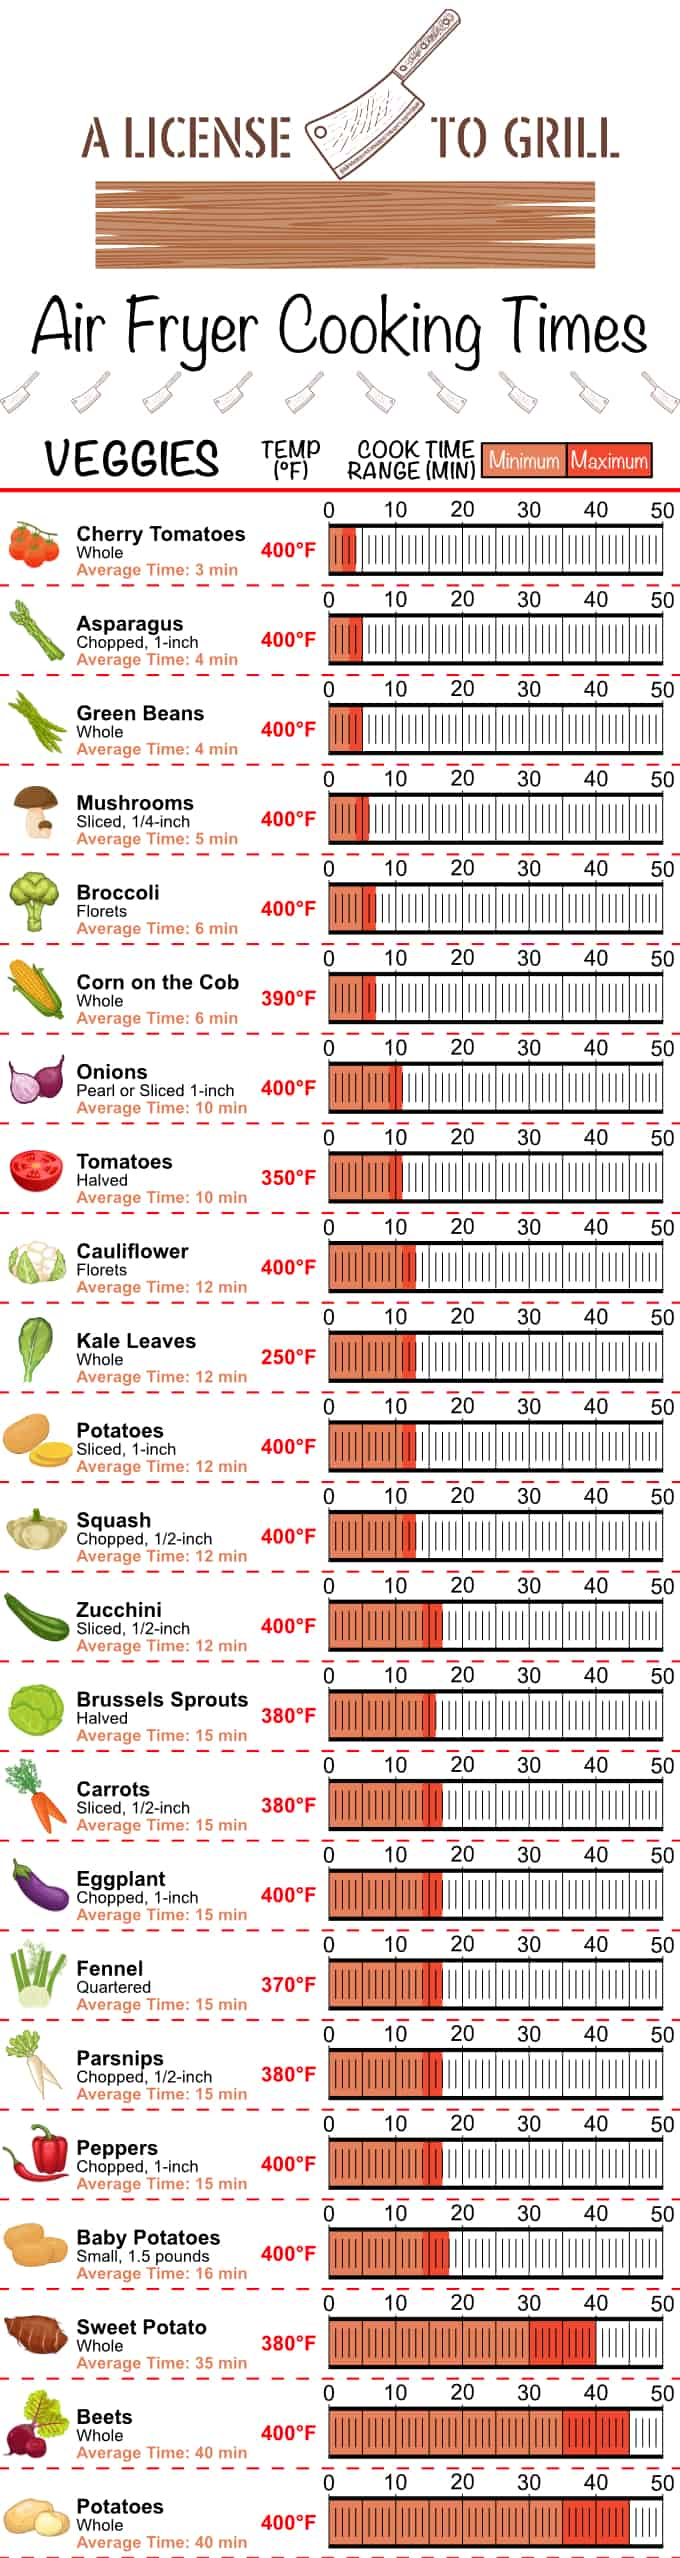 air fryer cooking times cheat sheet for veggies